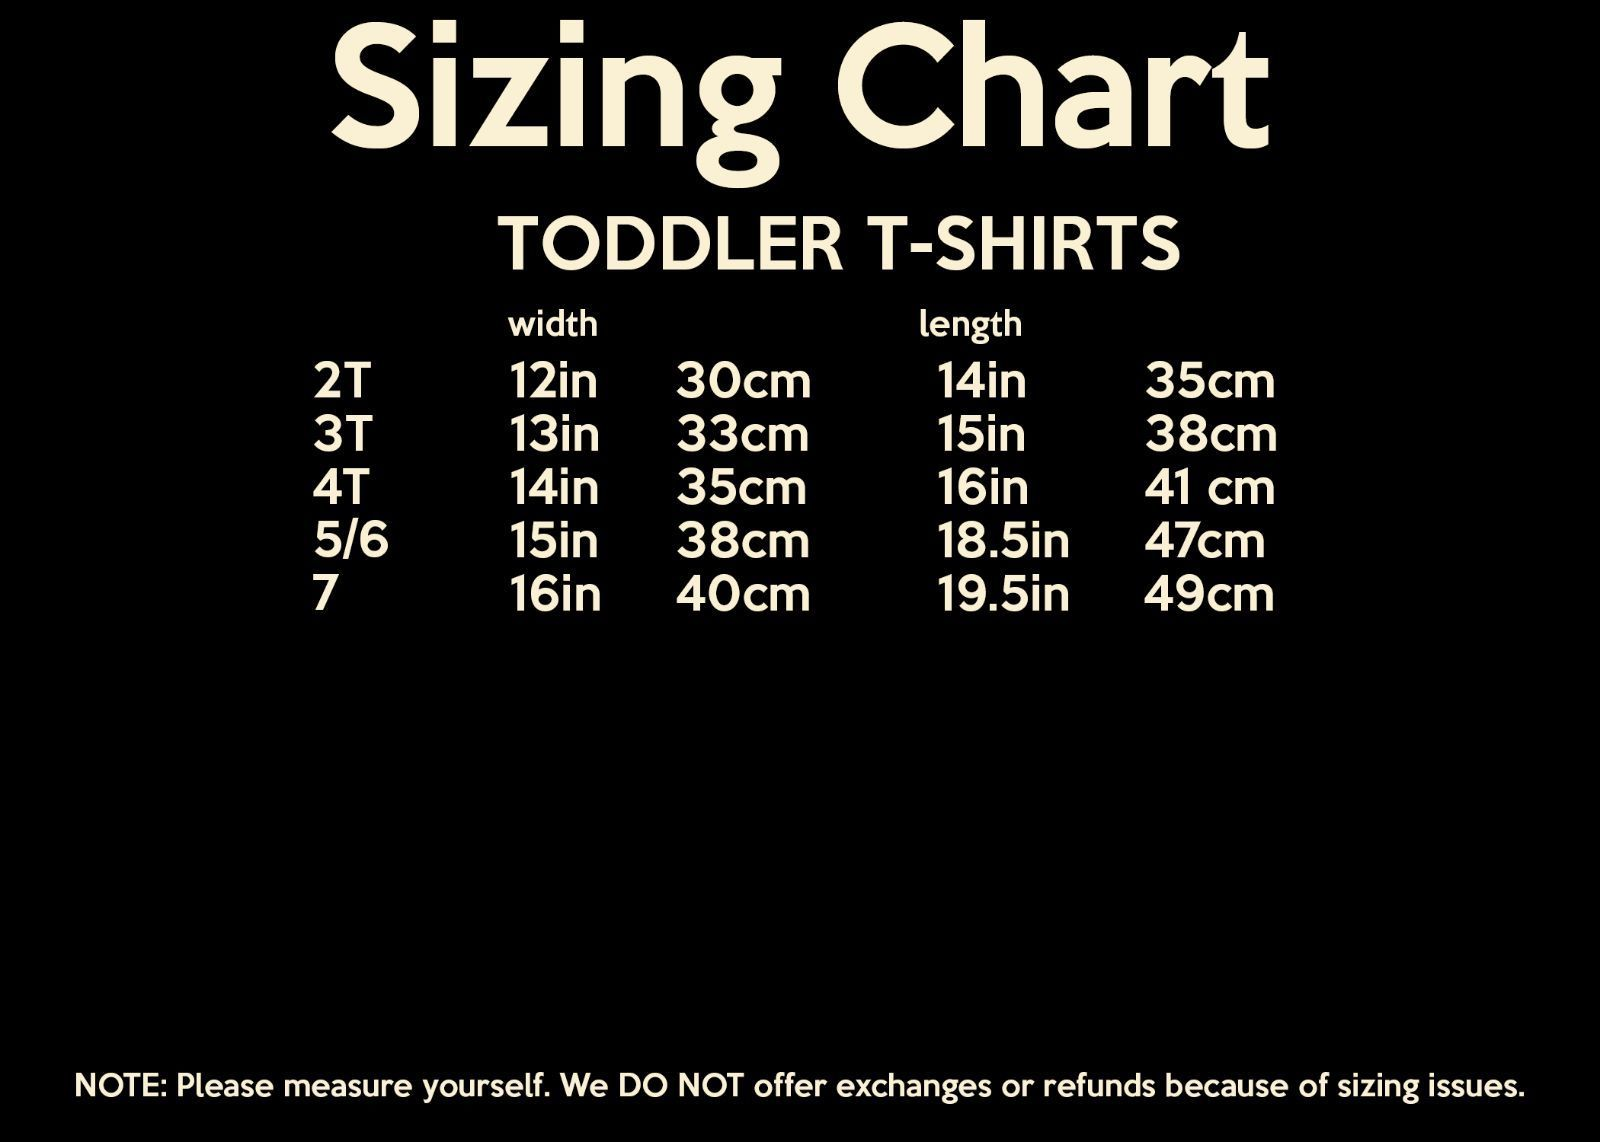 Best Present Ever Toddler Tee Kids Sizes Christmas Shirts 2T 3T 4T 5T Cheap Gift